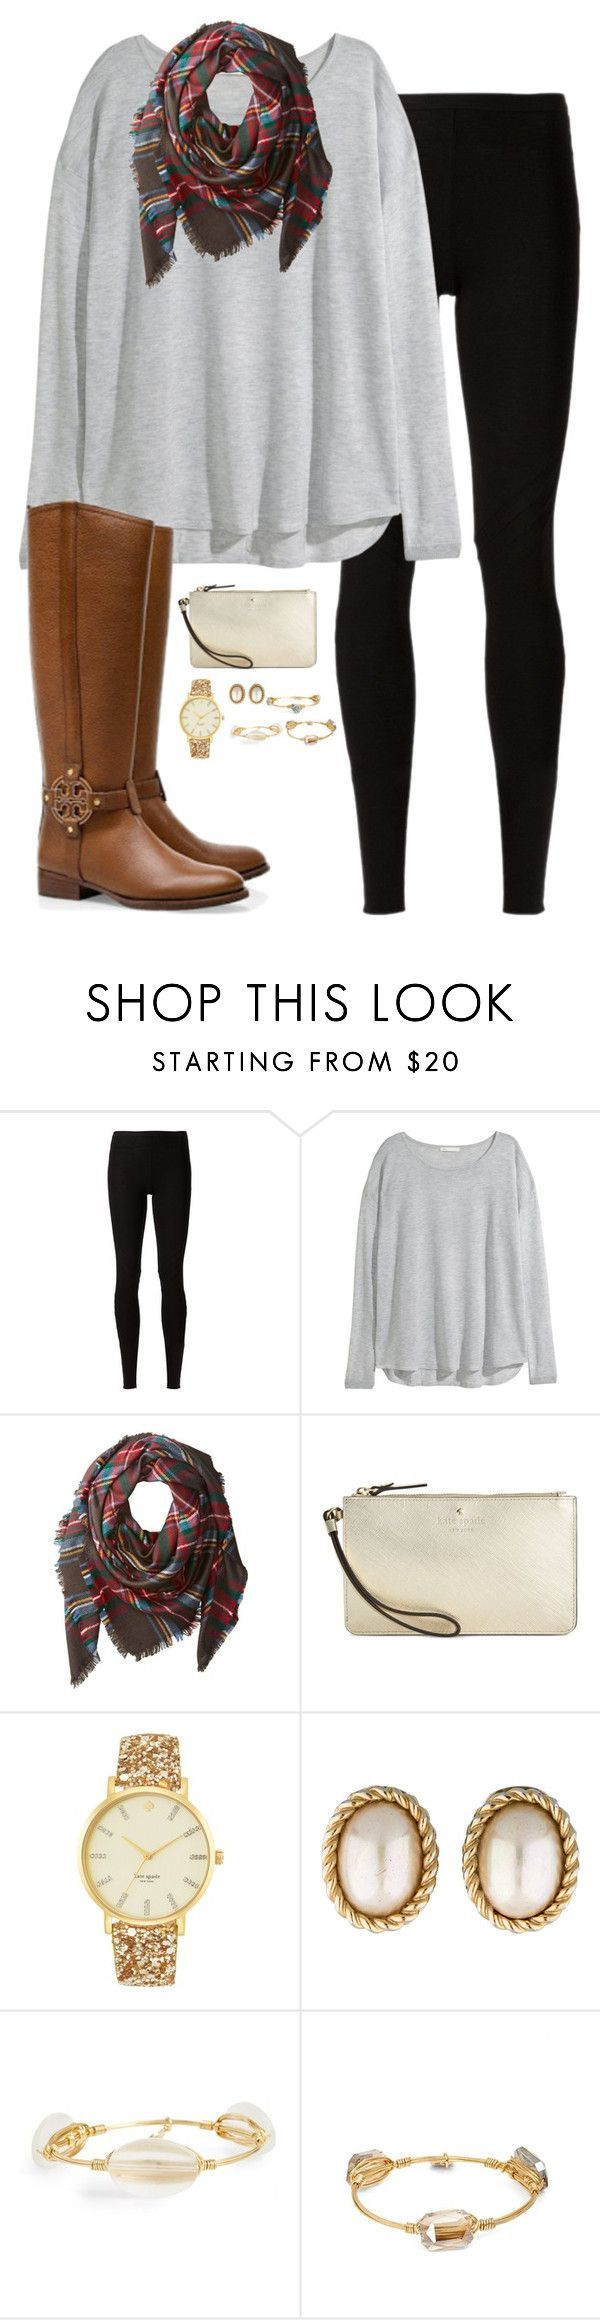 """Thanksgiving is in 12 days"" by sc-prep-girl ❤️ liked on Polyvore featuring Rick Owens Lilies, H&M, Buji Baja, Tory Burch, Kate Spade, Christian Dior and Bourbon and Boweties"